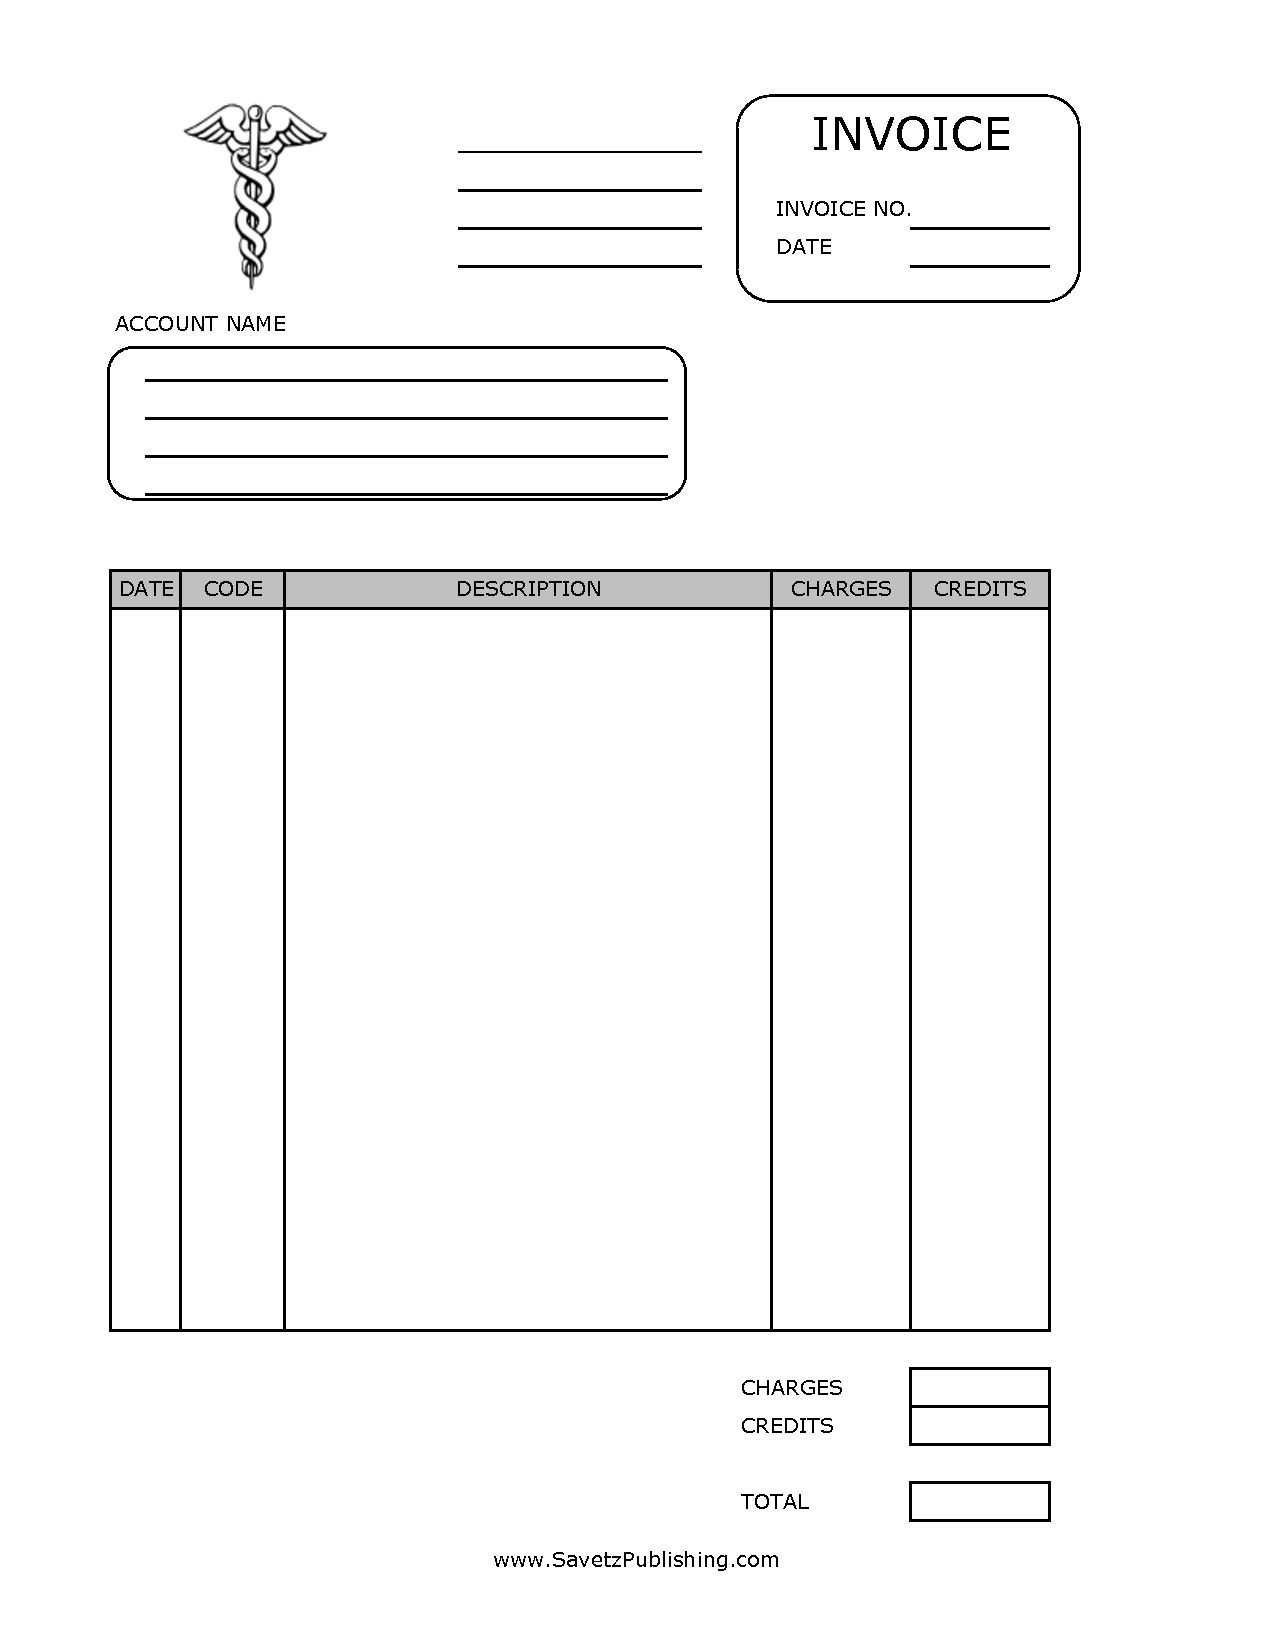 Pin On Invoice pertaining to Invoice Template Word 2010